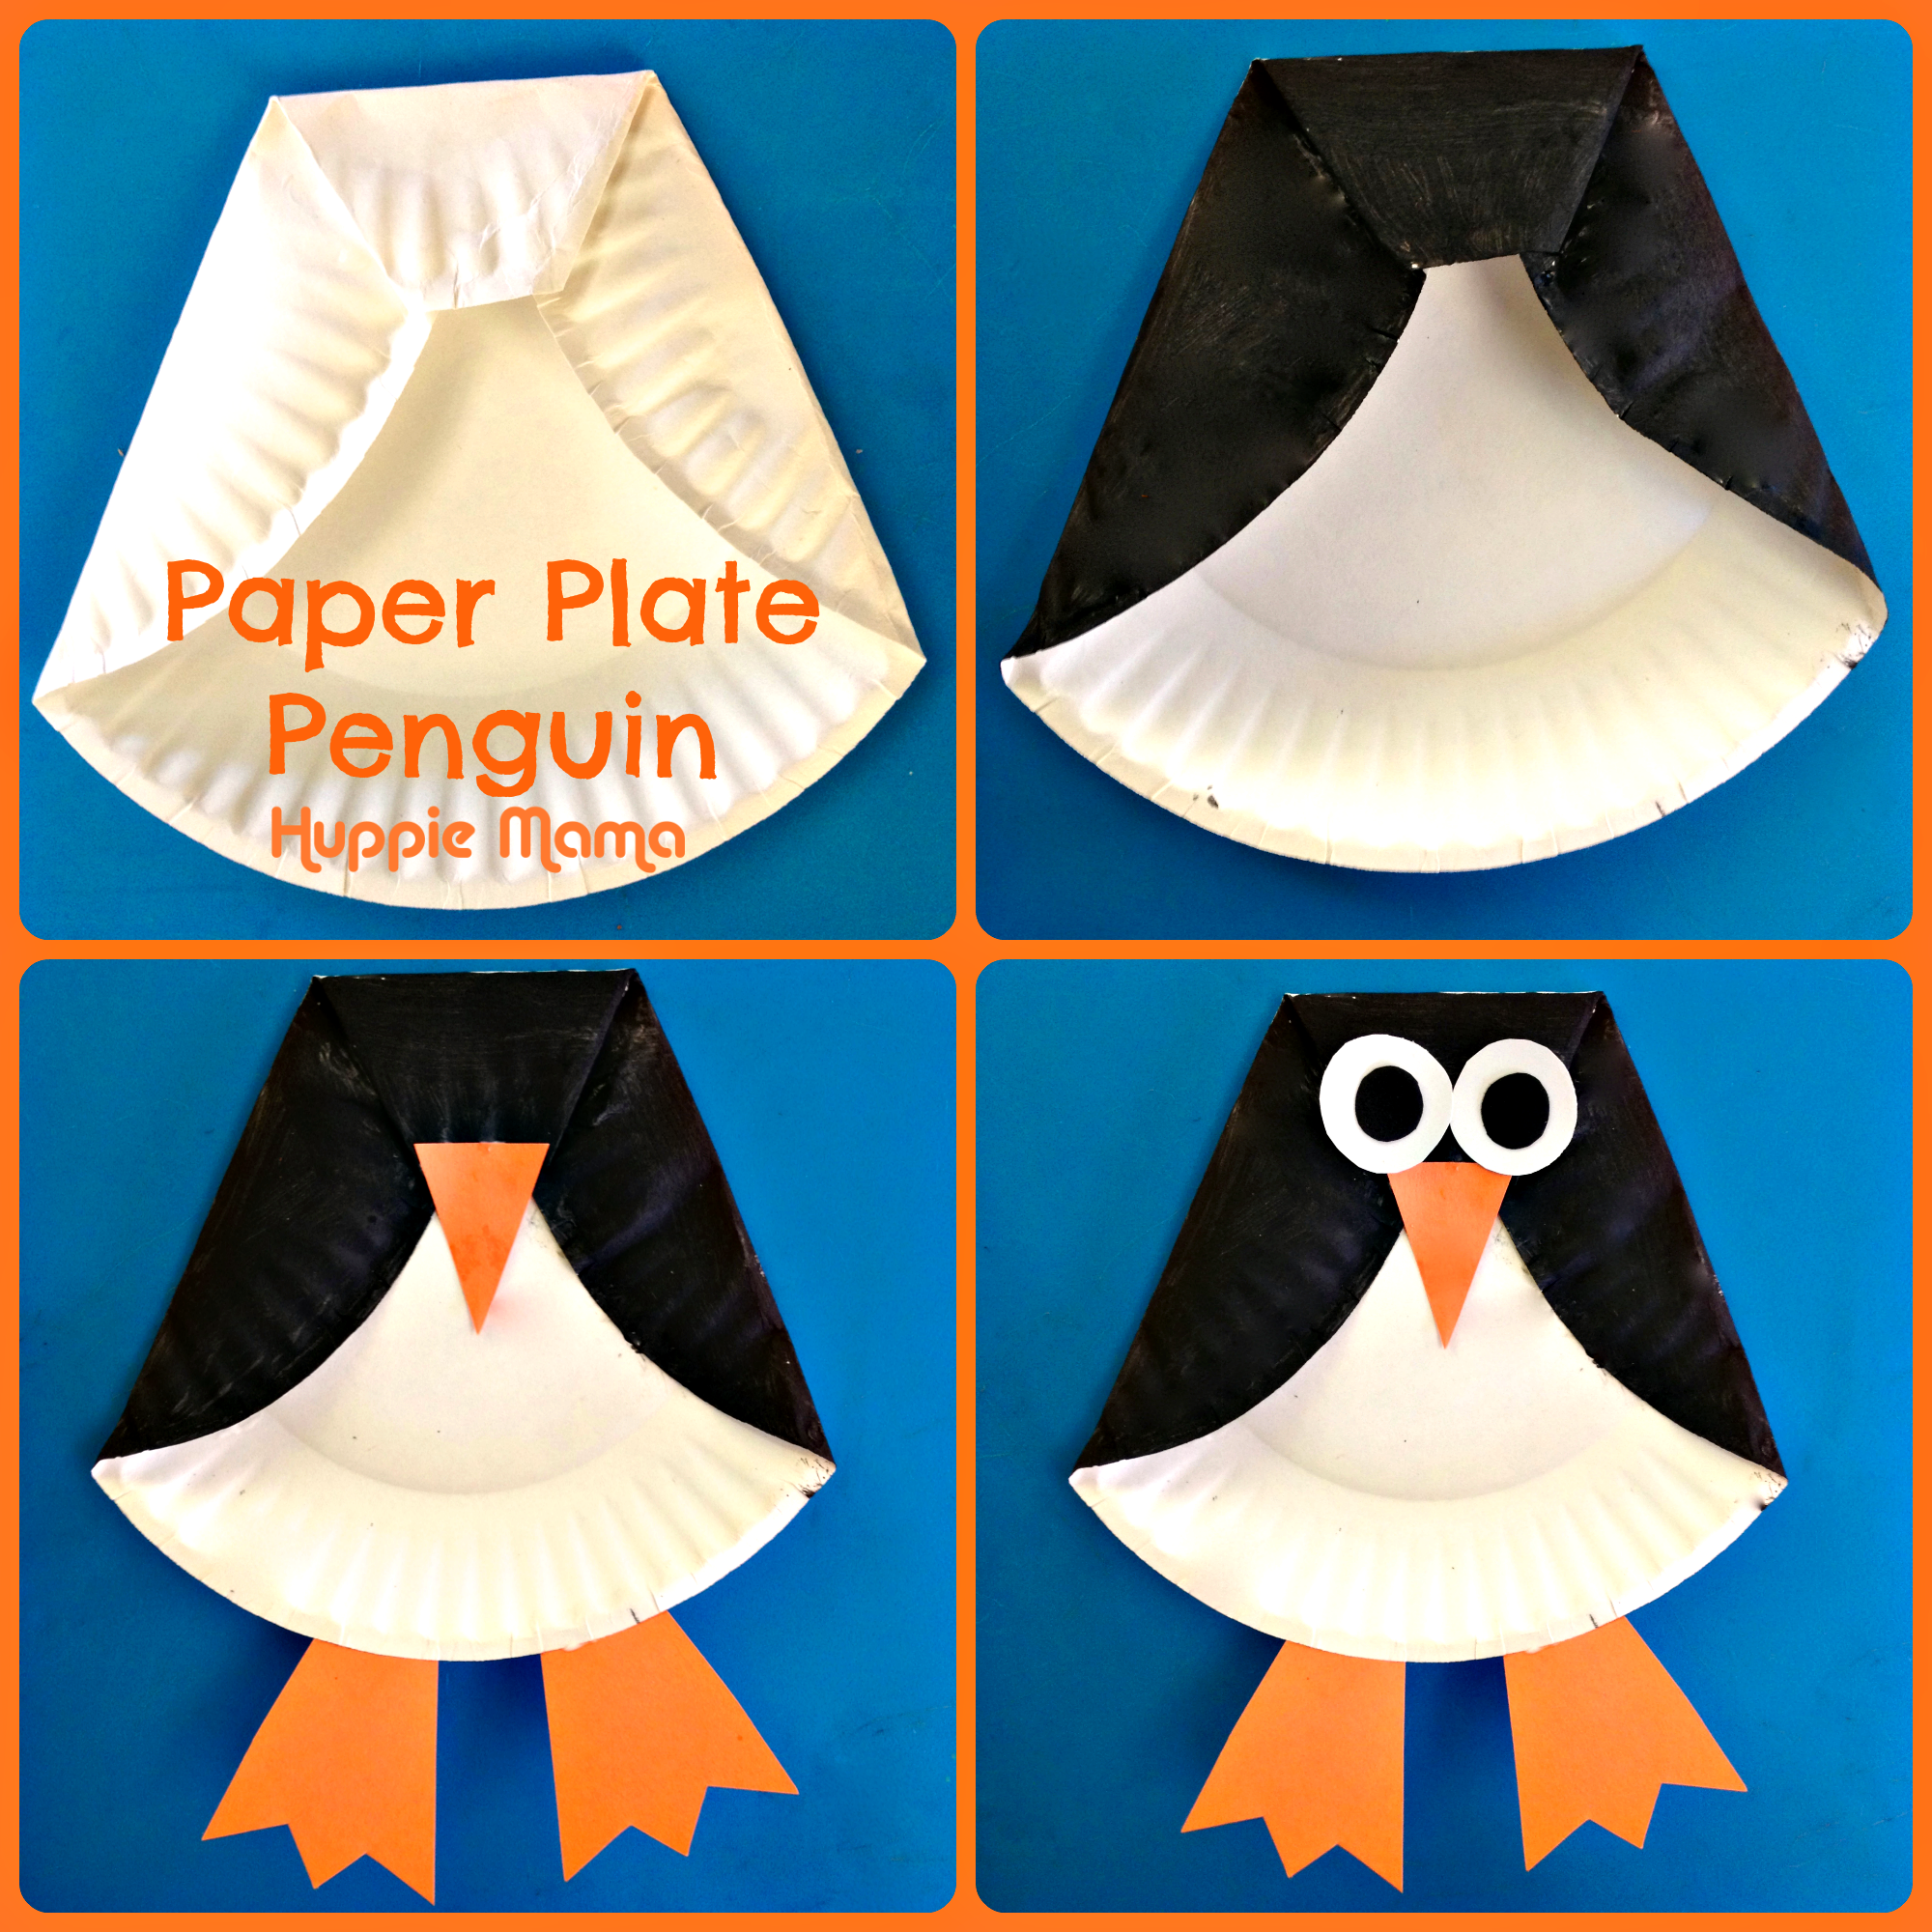 Cute Penguin Paper Plate Craft for Kids from Huppie Mama  sc 1 st  Pinterest & Cute Penguin Paper Plate Craft for Kids from Huppie Mama | Daycare ...